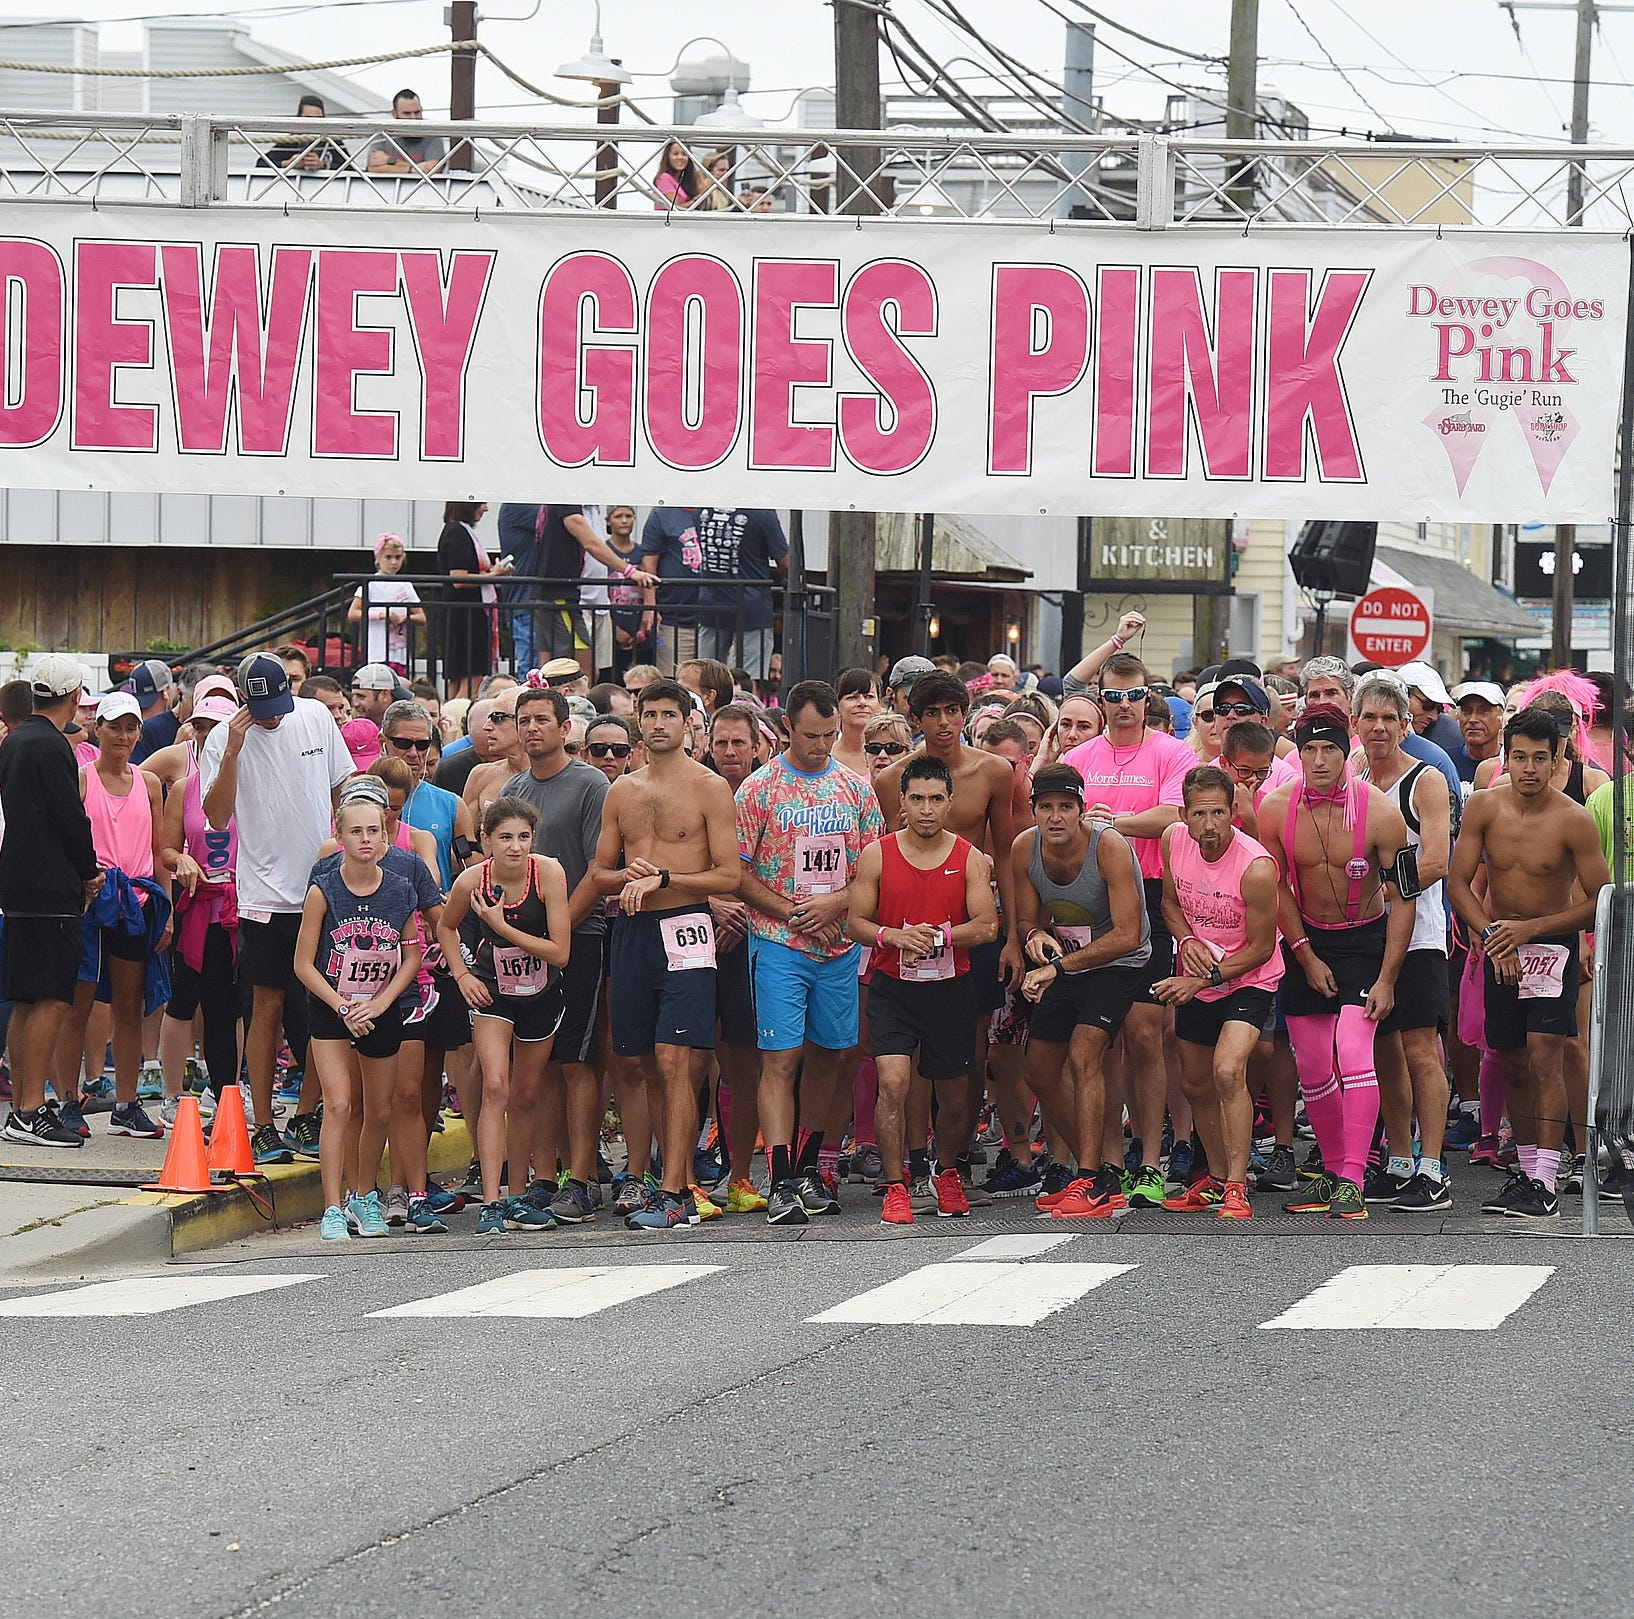 Dewey Goes Pink 5K smashes fundraising record